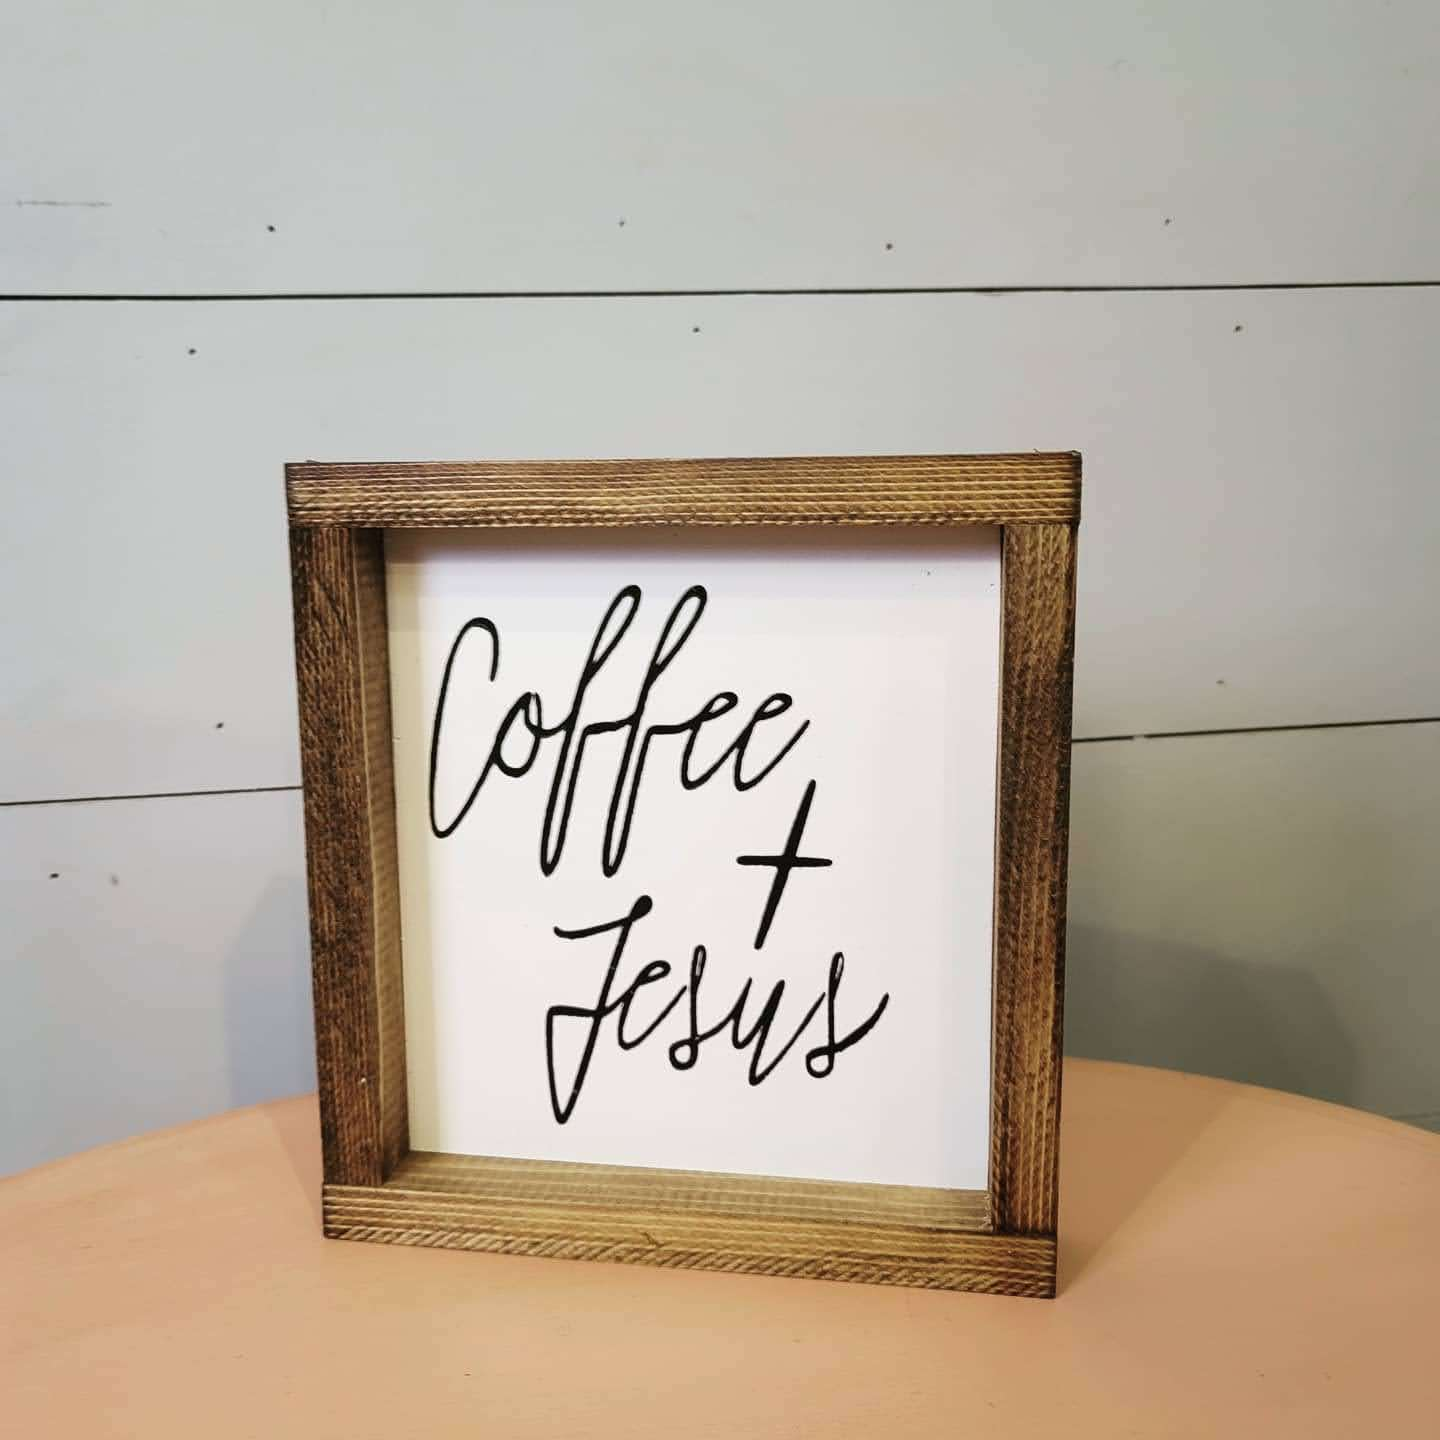 Coffee and Jesus sign made in the USA